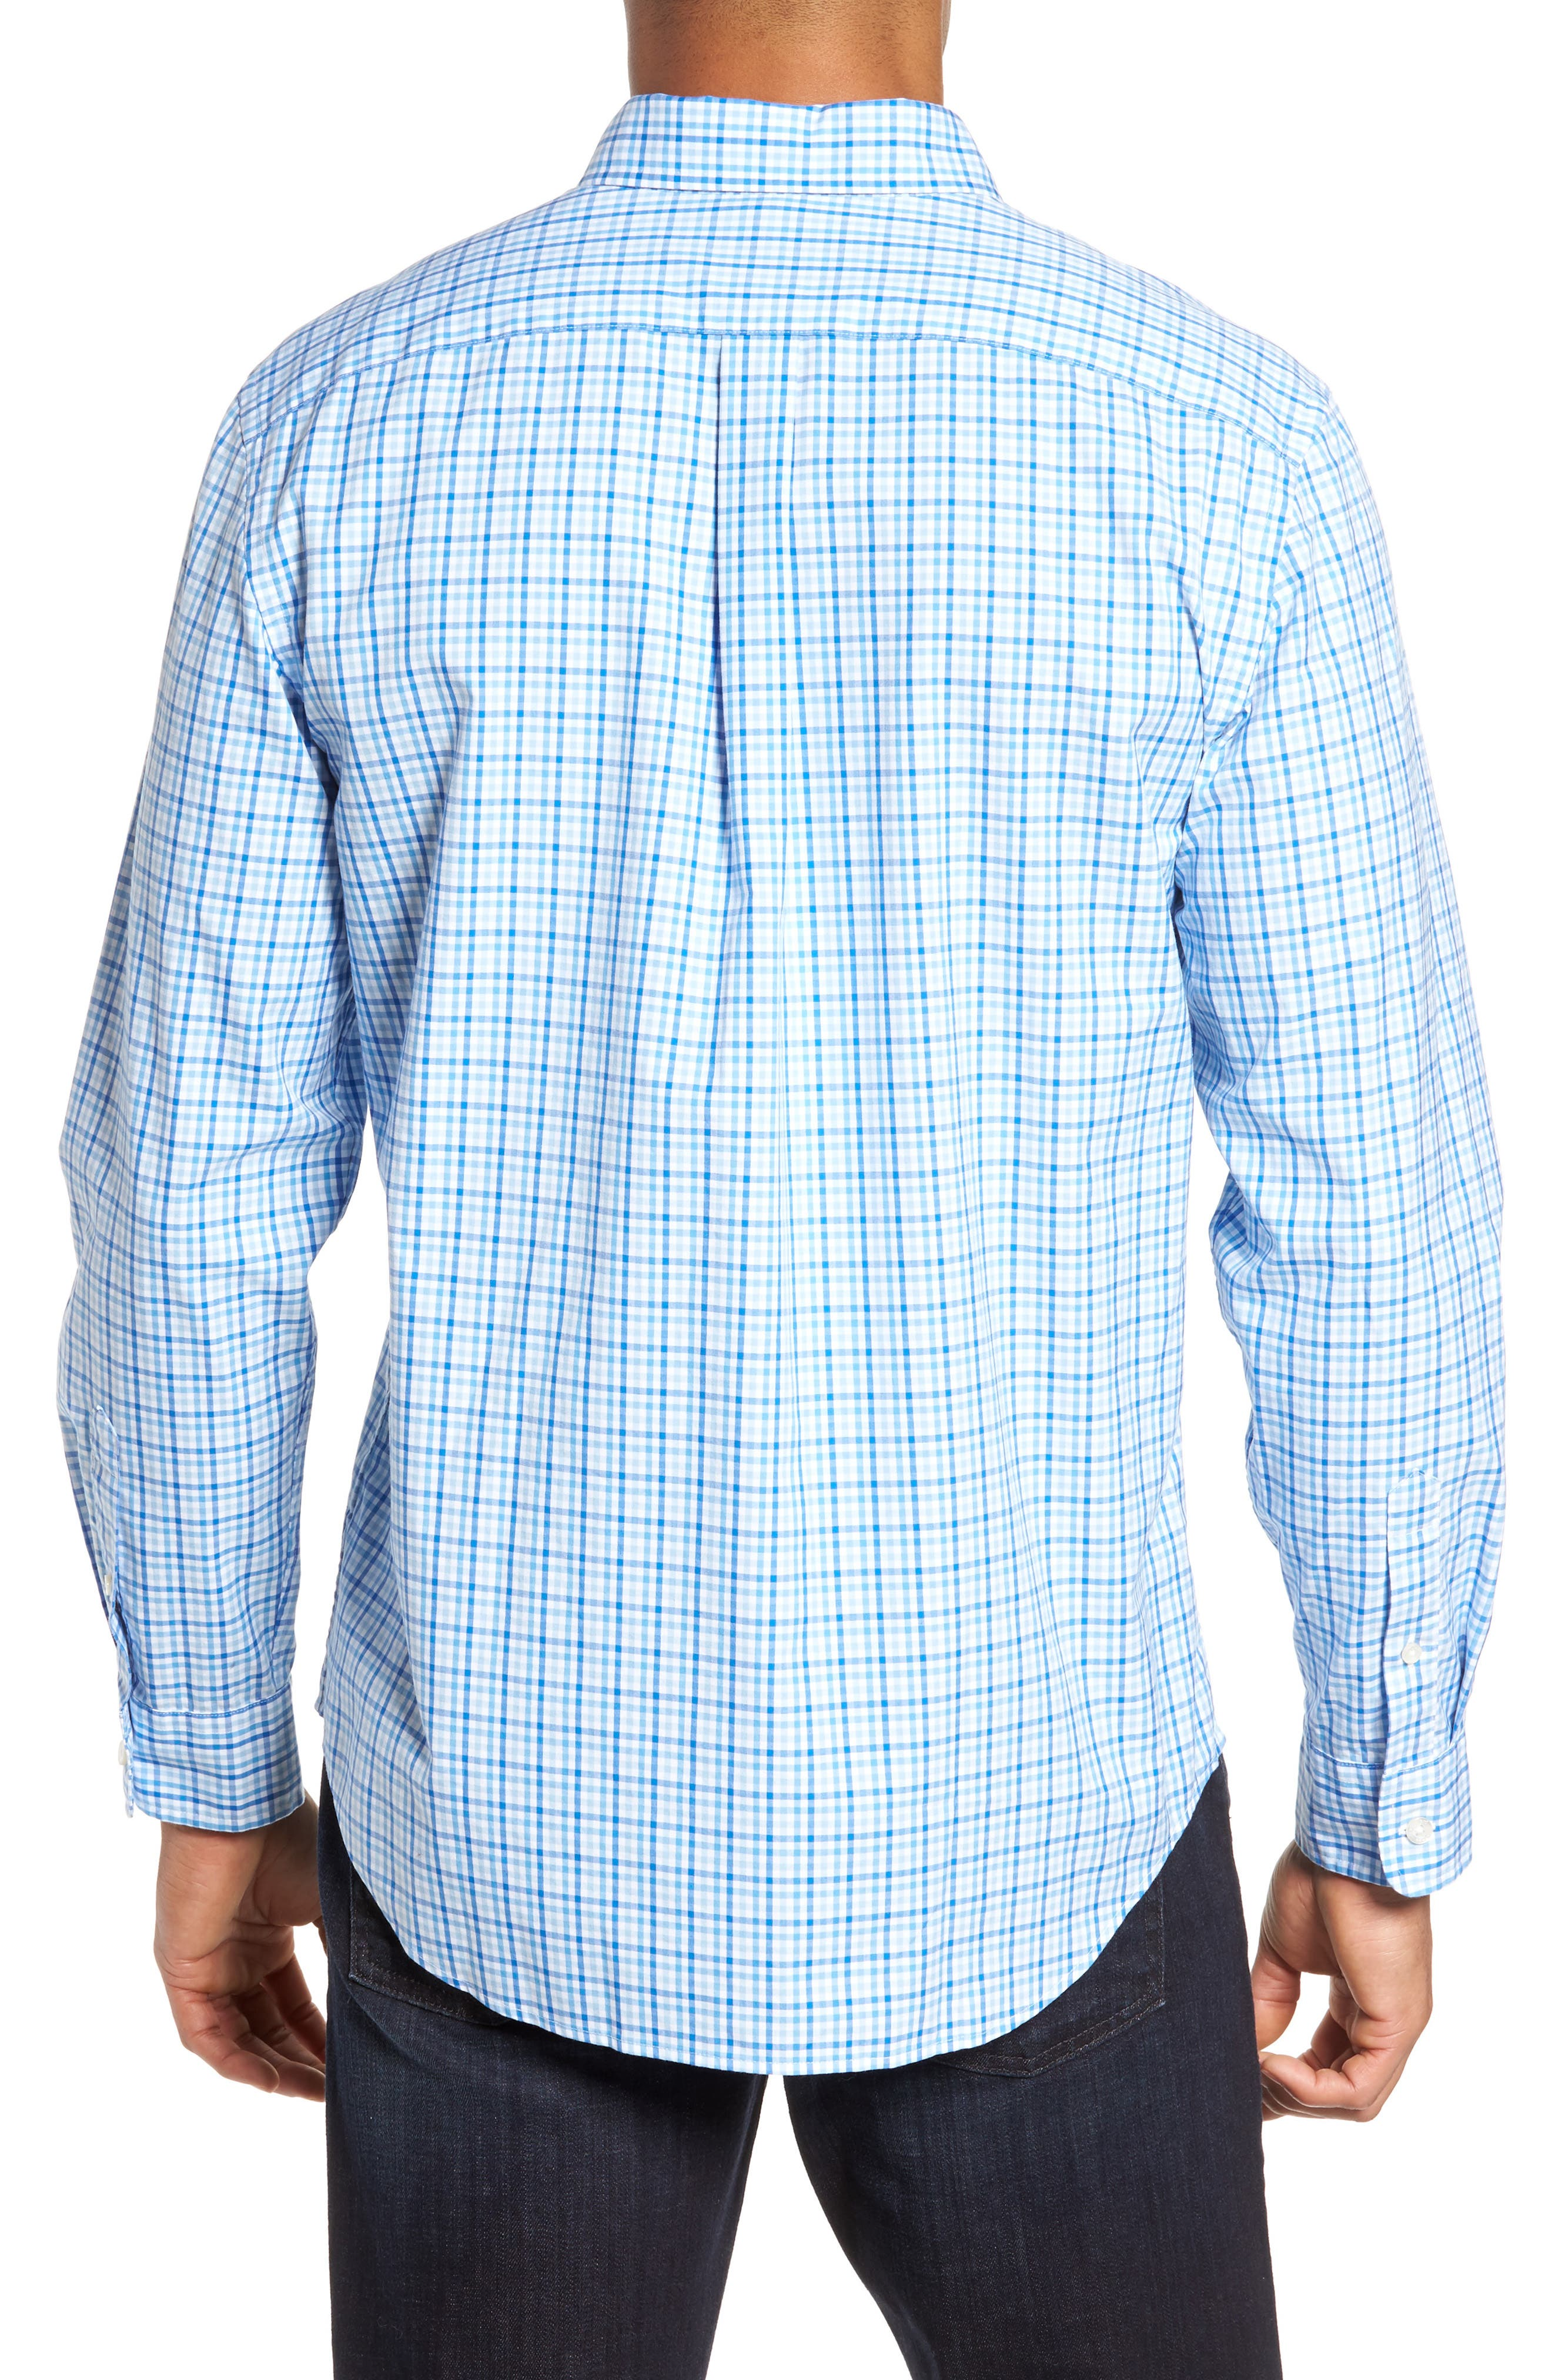 Munroe Tucker Classic Fit Gingham Sport Shirt,                             Alternate thumbnail 2, color,                             Jake Blue